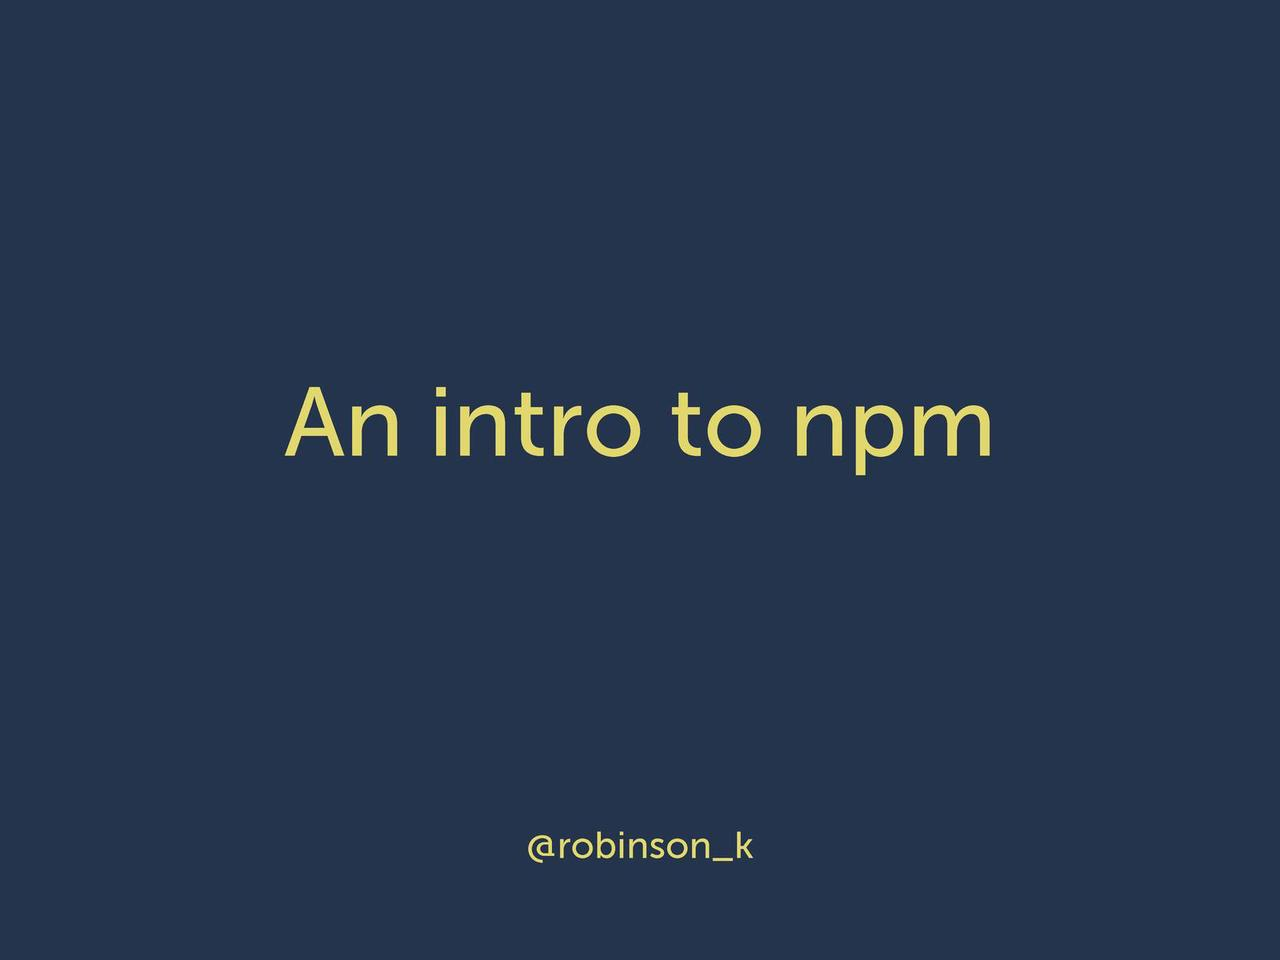 An intro to npm